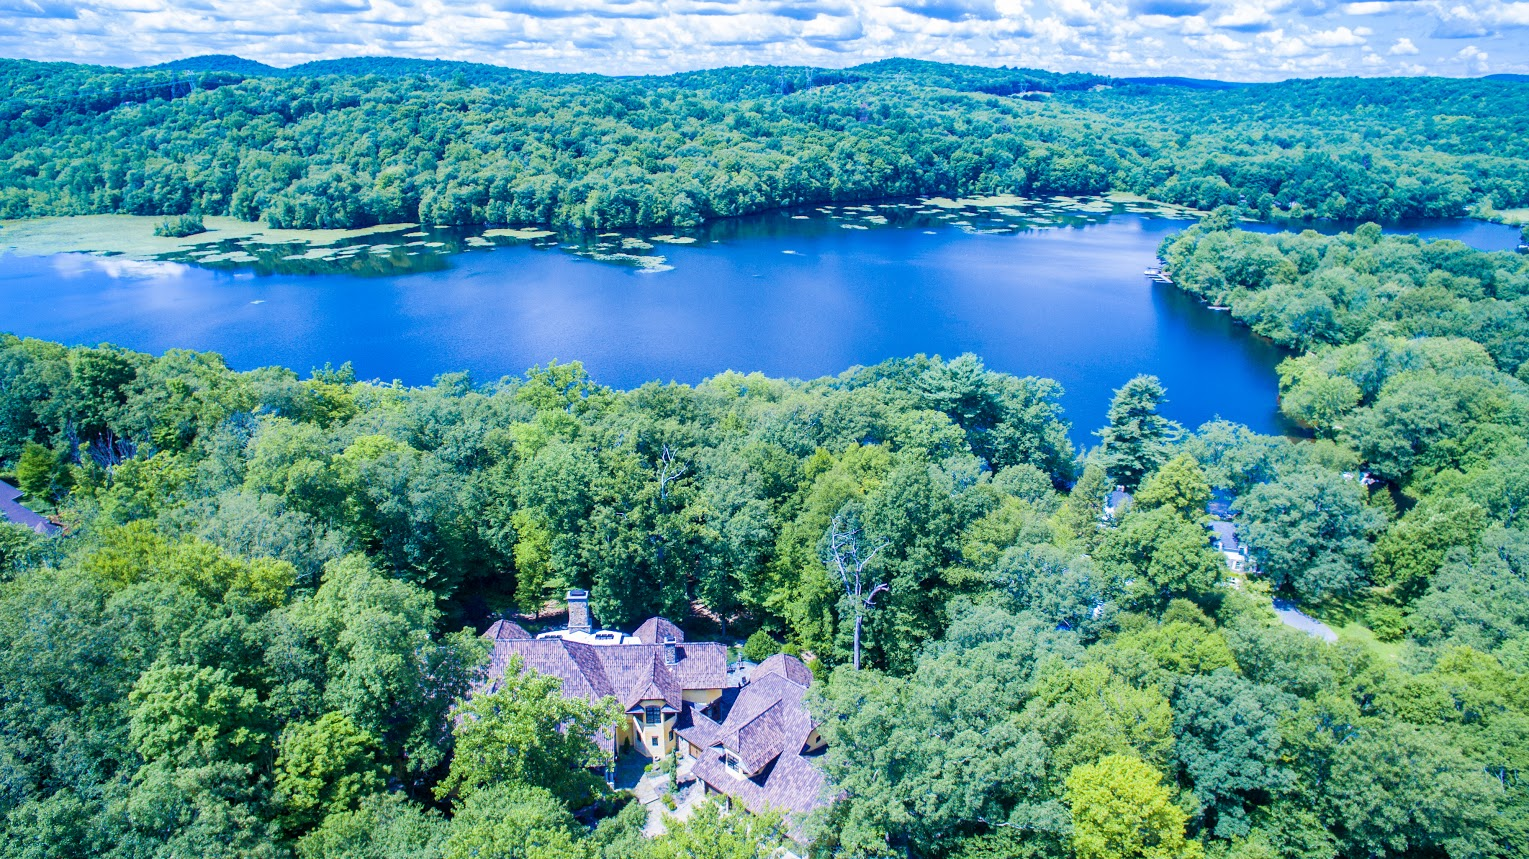 Single Family Home for Sale at Exclusive Waterfront Home 4 Old Cranberry Road Sloatsburg, New York 10974 United States